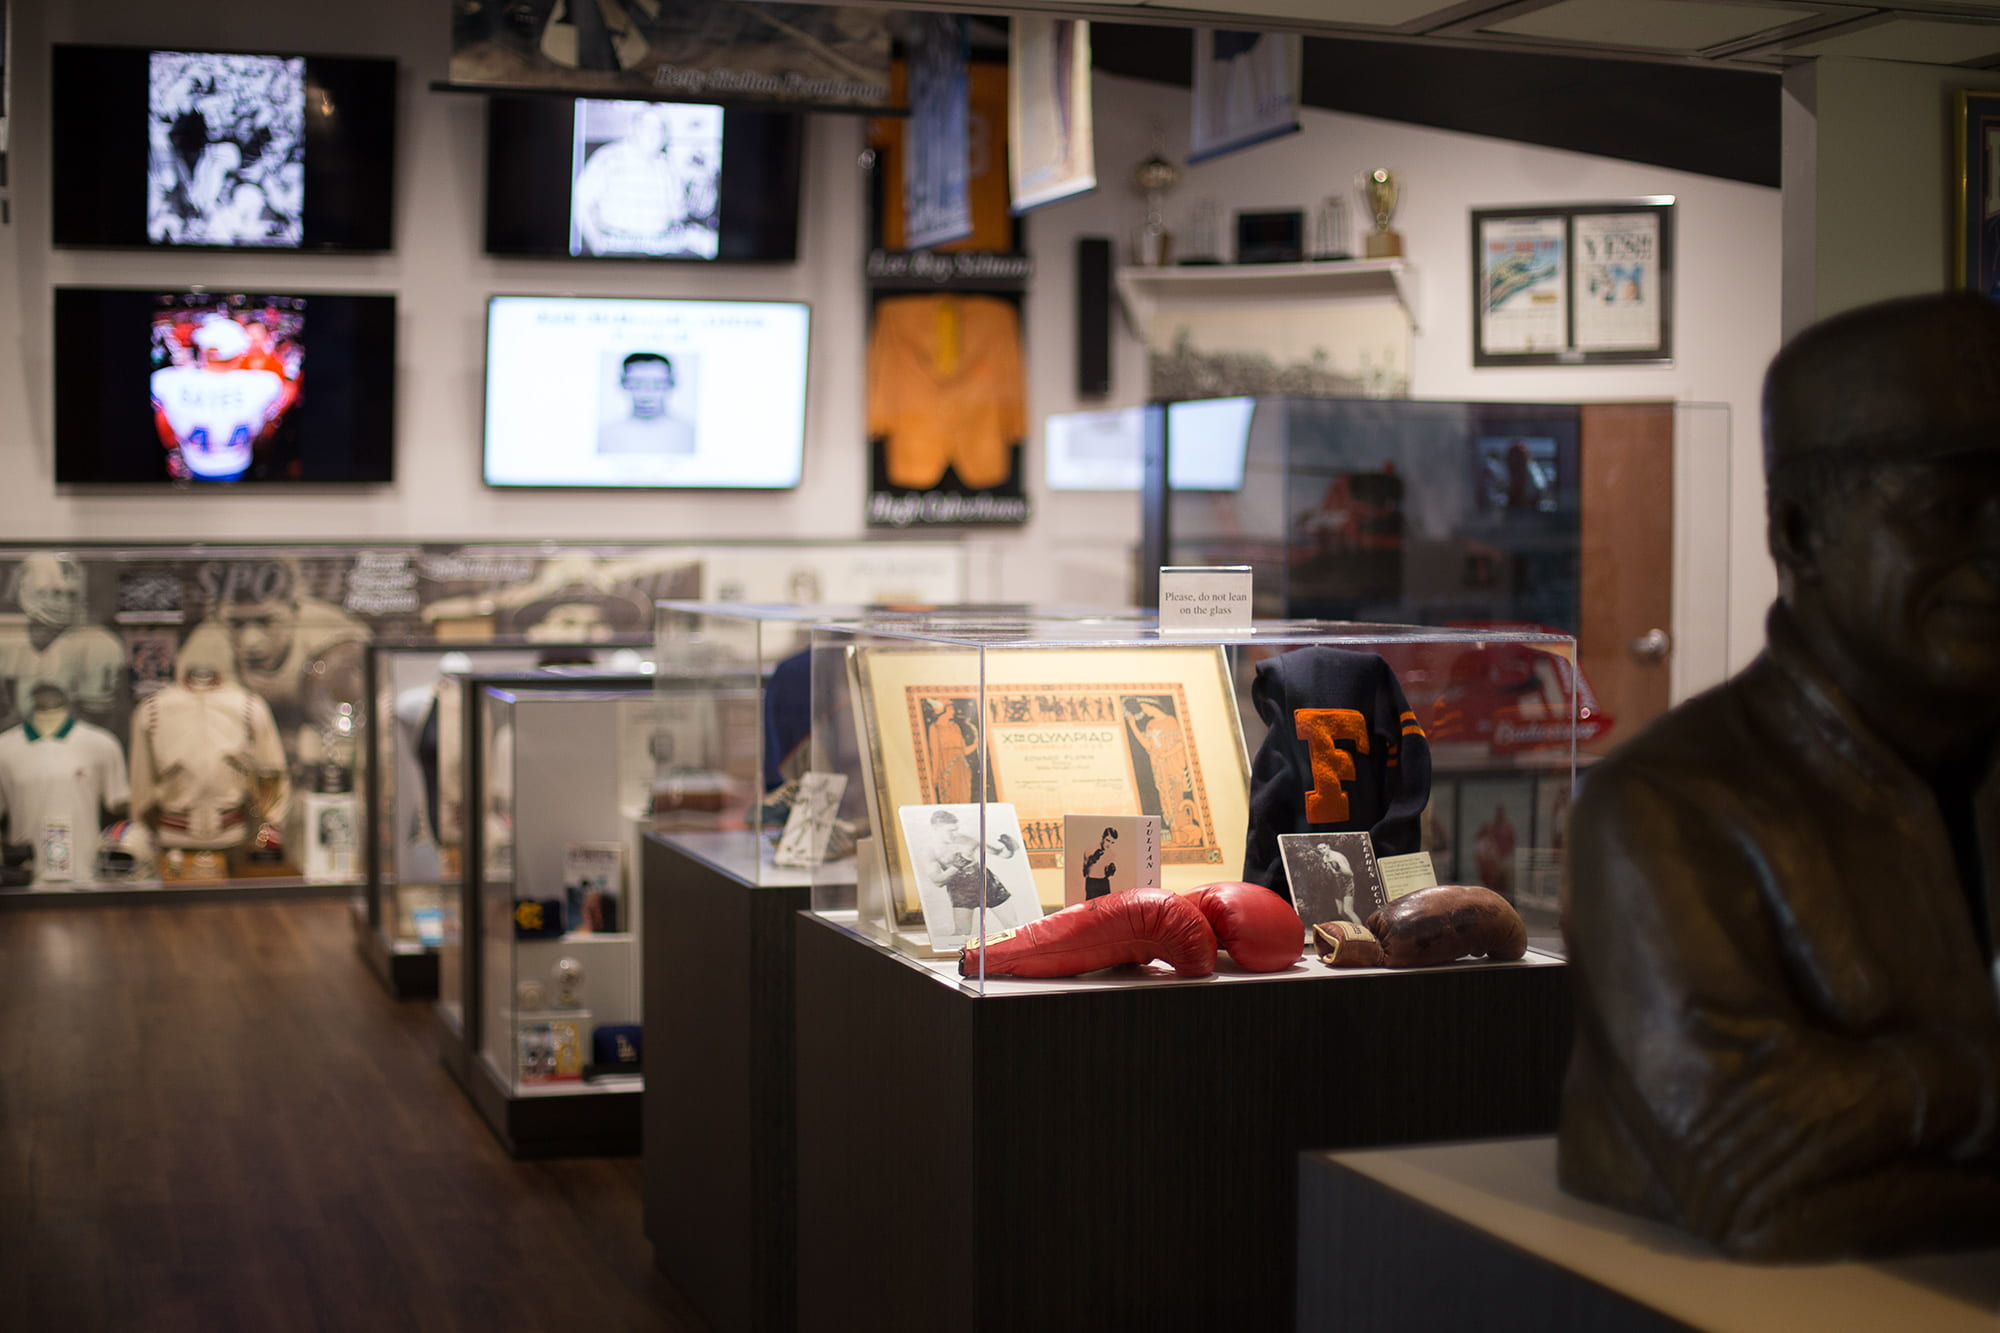 Sports memorabilia from Florida athletes on display at Florida Sports Hall of Fame Preview Center in Davenport, FL